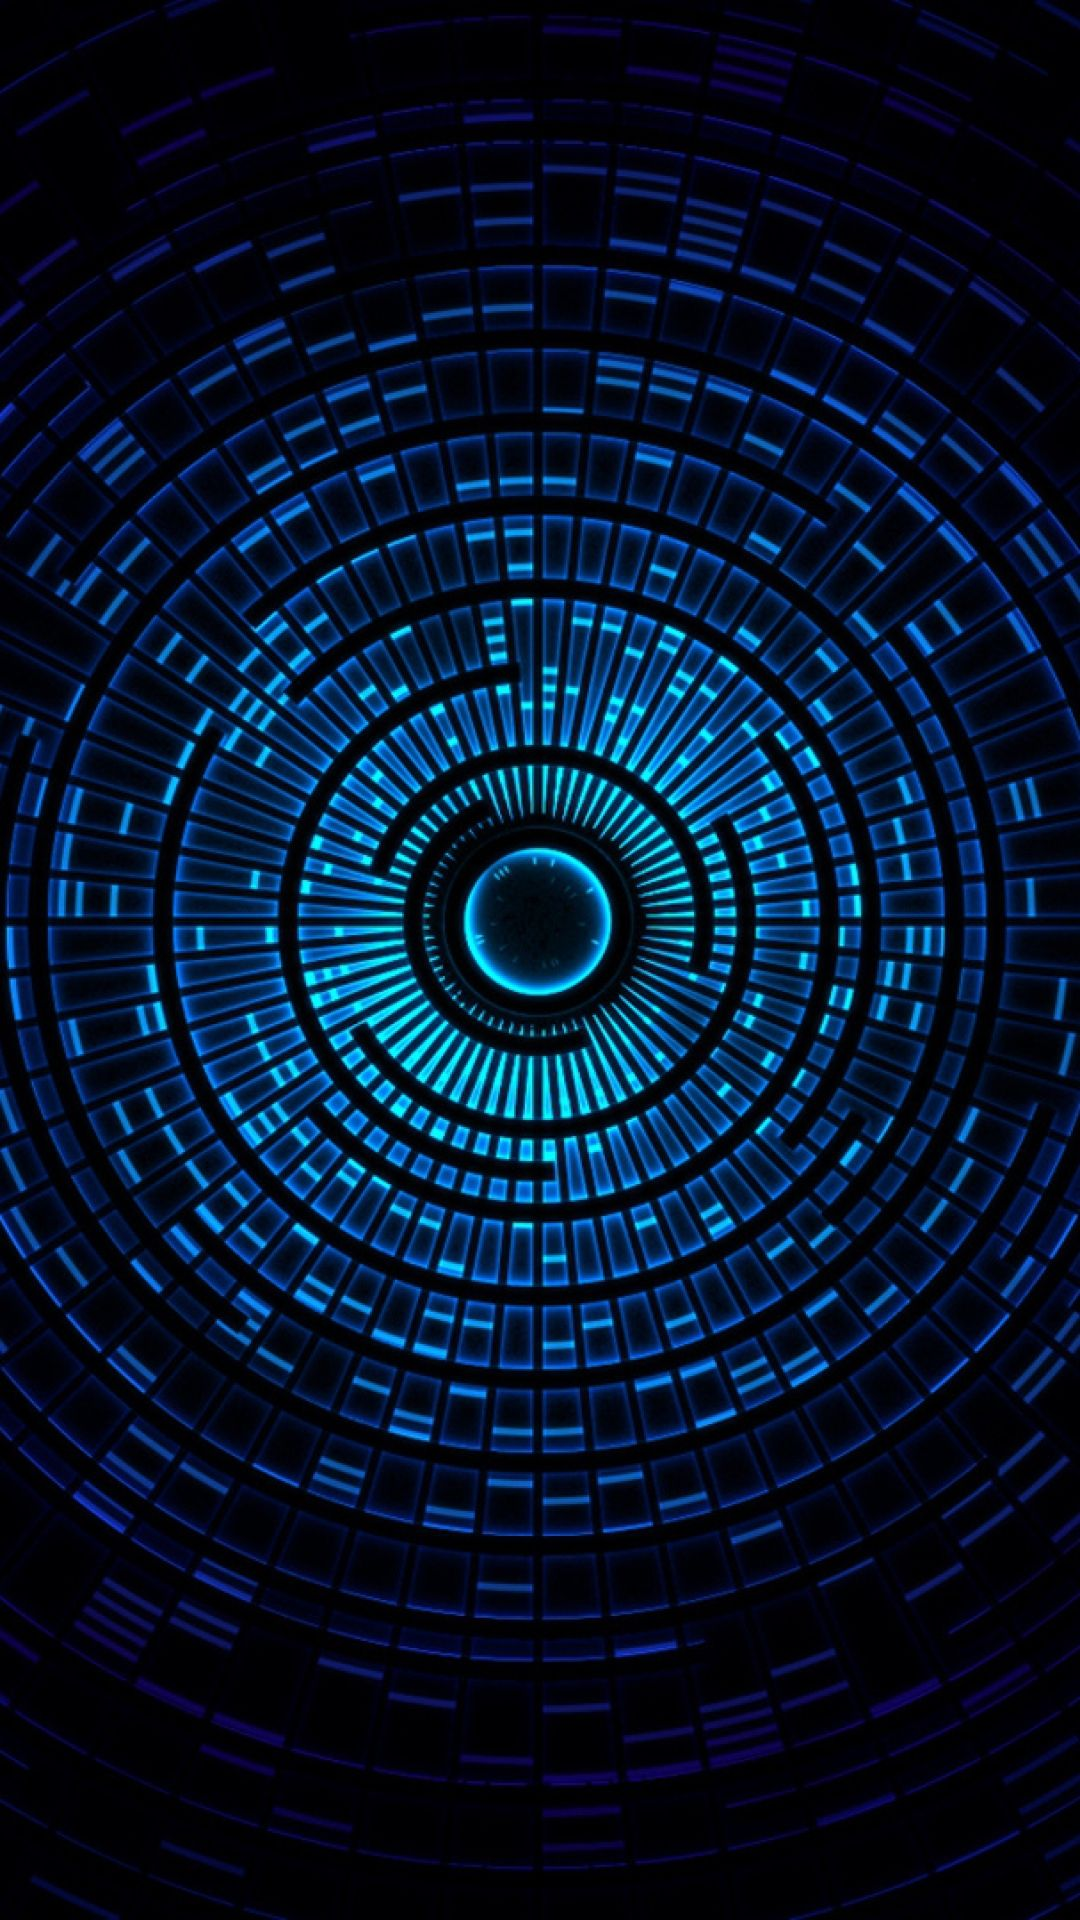 Hd Background Blue Circle Pattern Abstract Design Texture Wallpaper Blue Abstract Iphone 5 Wallpaper Background Pictures